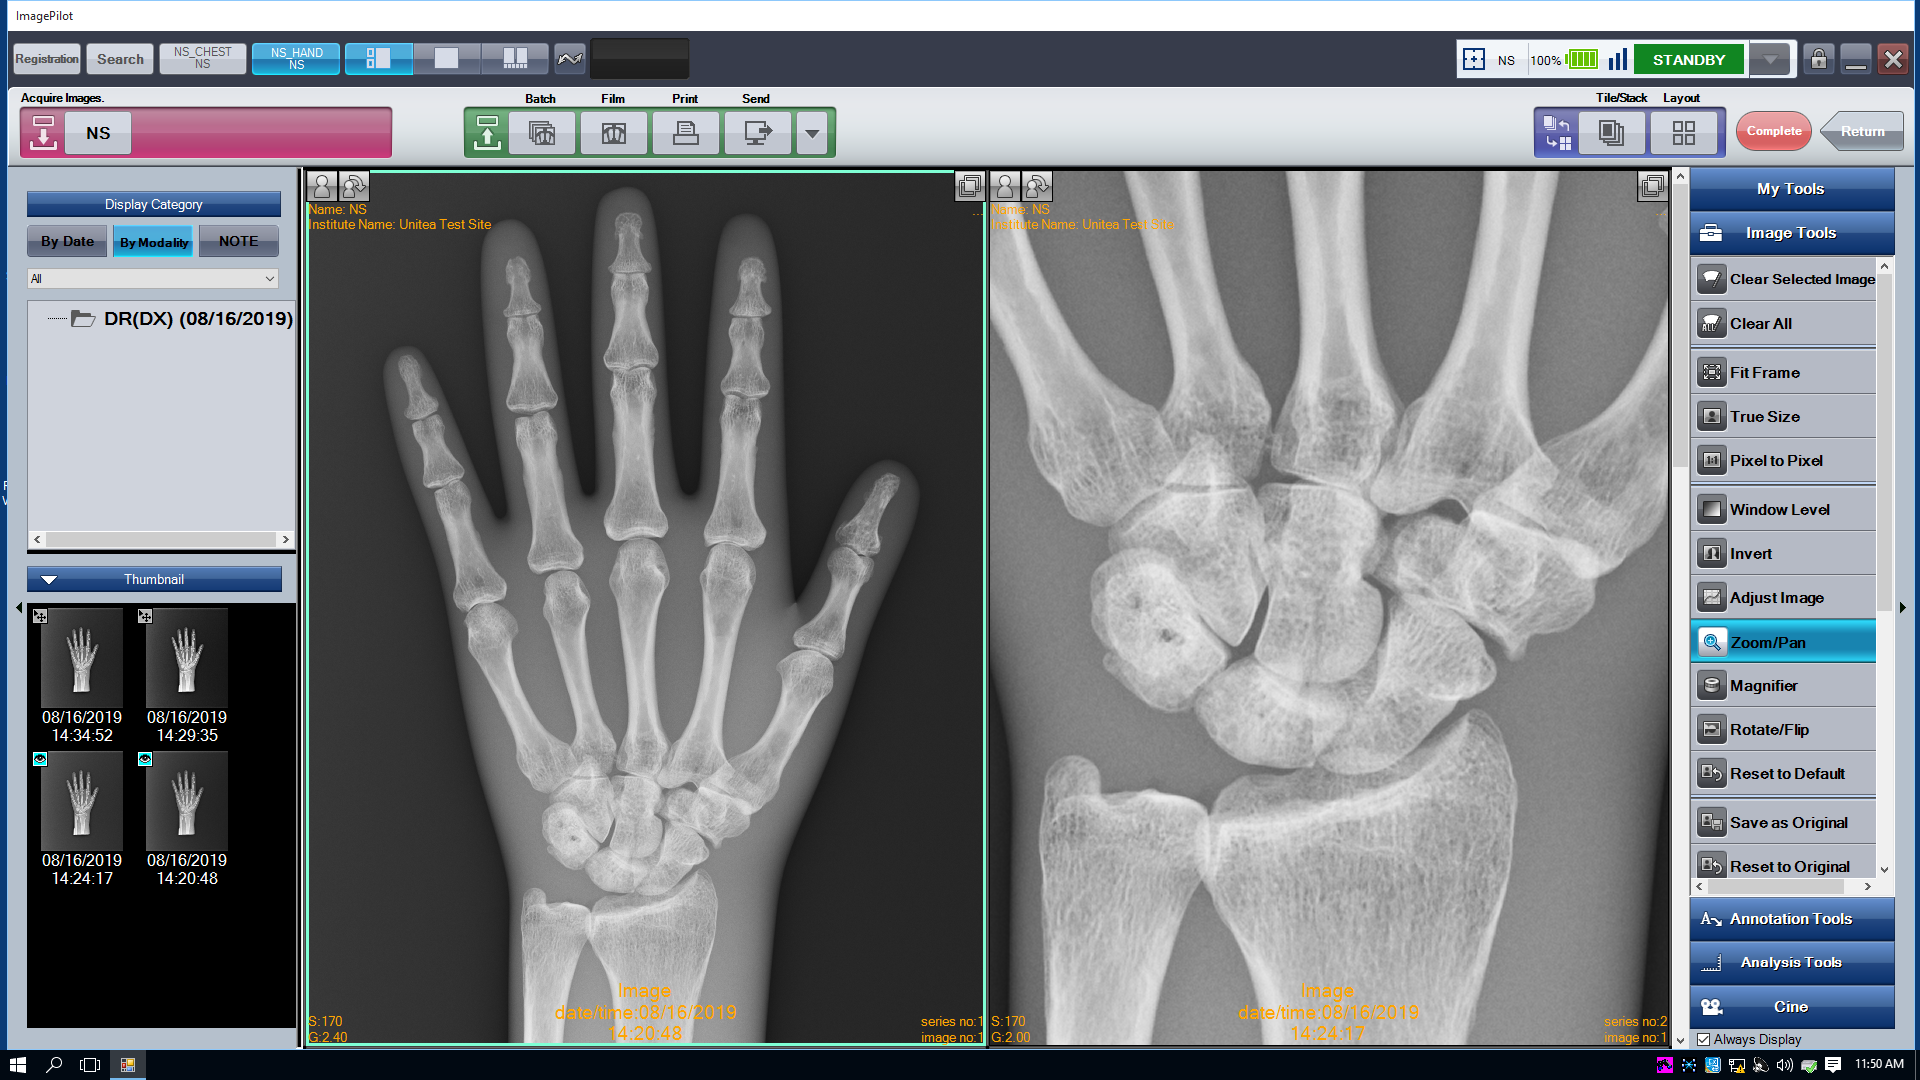 ImagePilot screen Ortho_Hand_Zoom